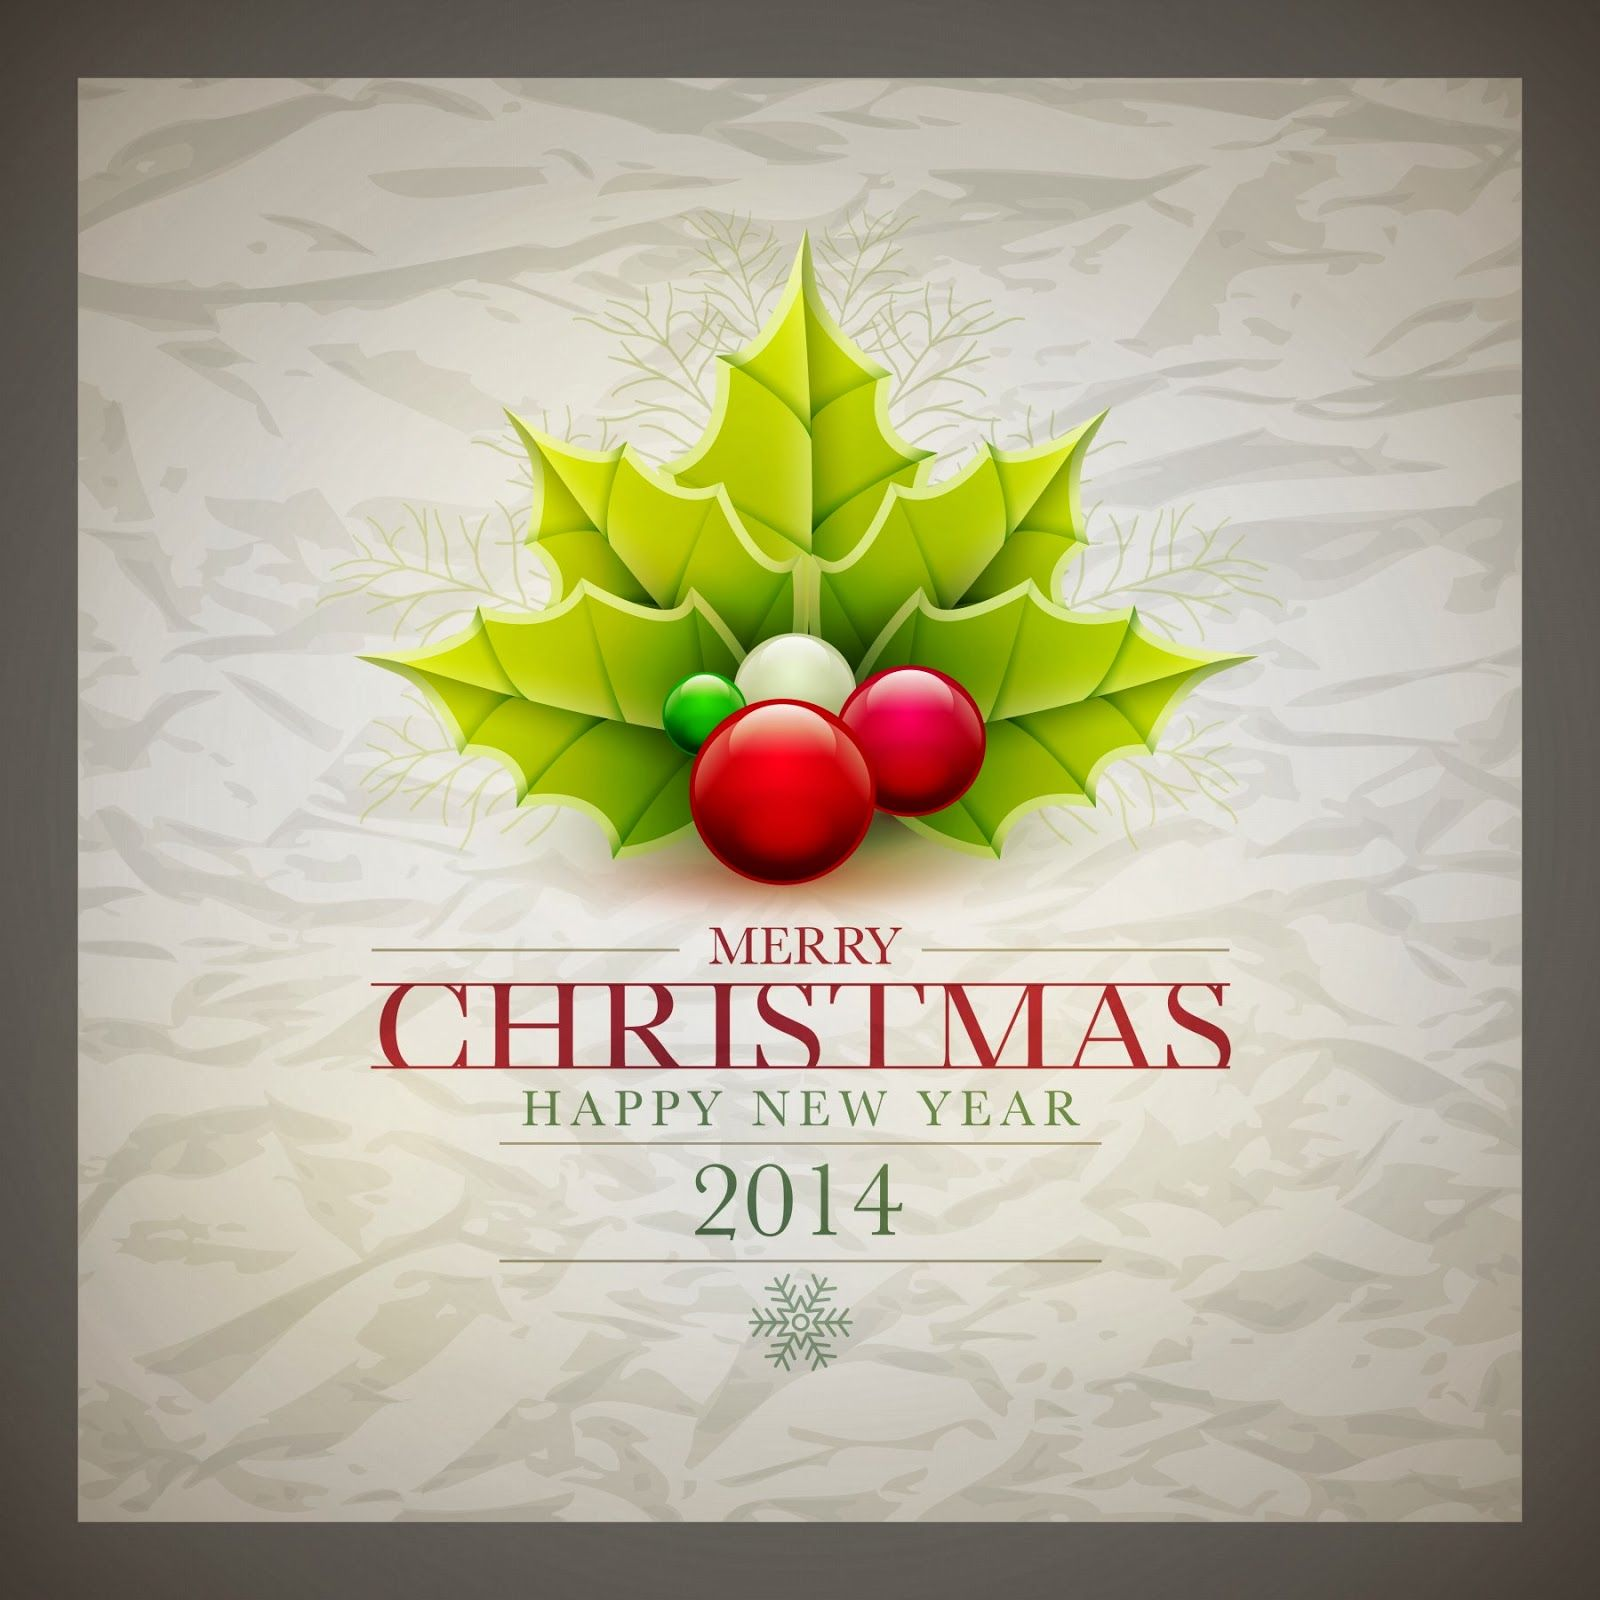 Christmas Cards 2014 Hd Wallpapers Blog Hd Wallpapers